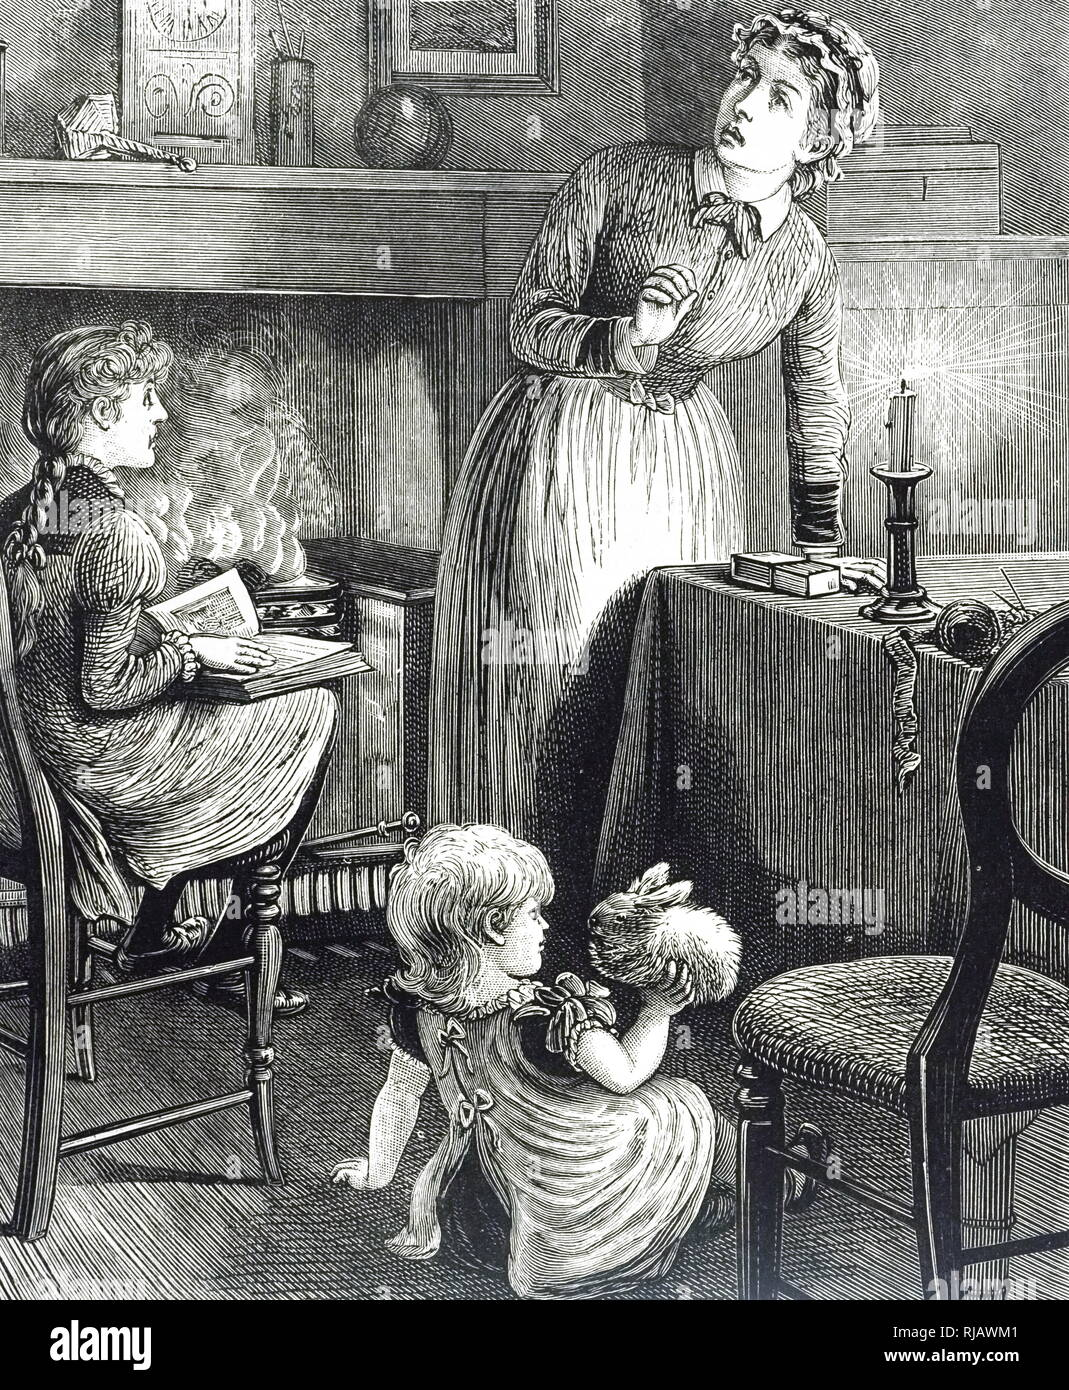 An engraving depicting a nursery maid and her charges. A box of matches is by the candlestick on the table. Dated 19th century - Stock Image